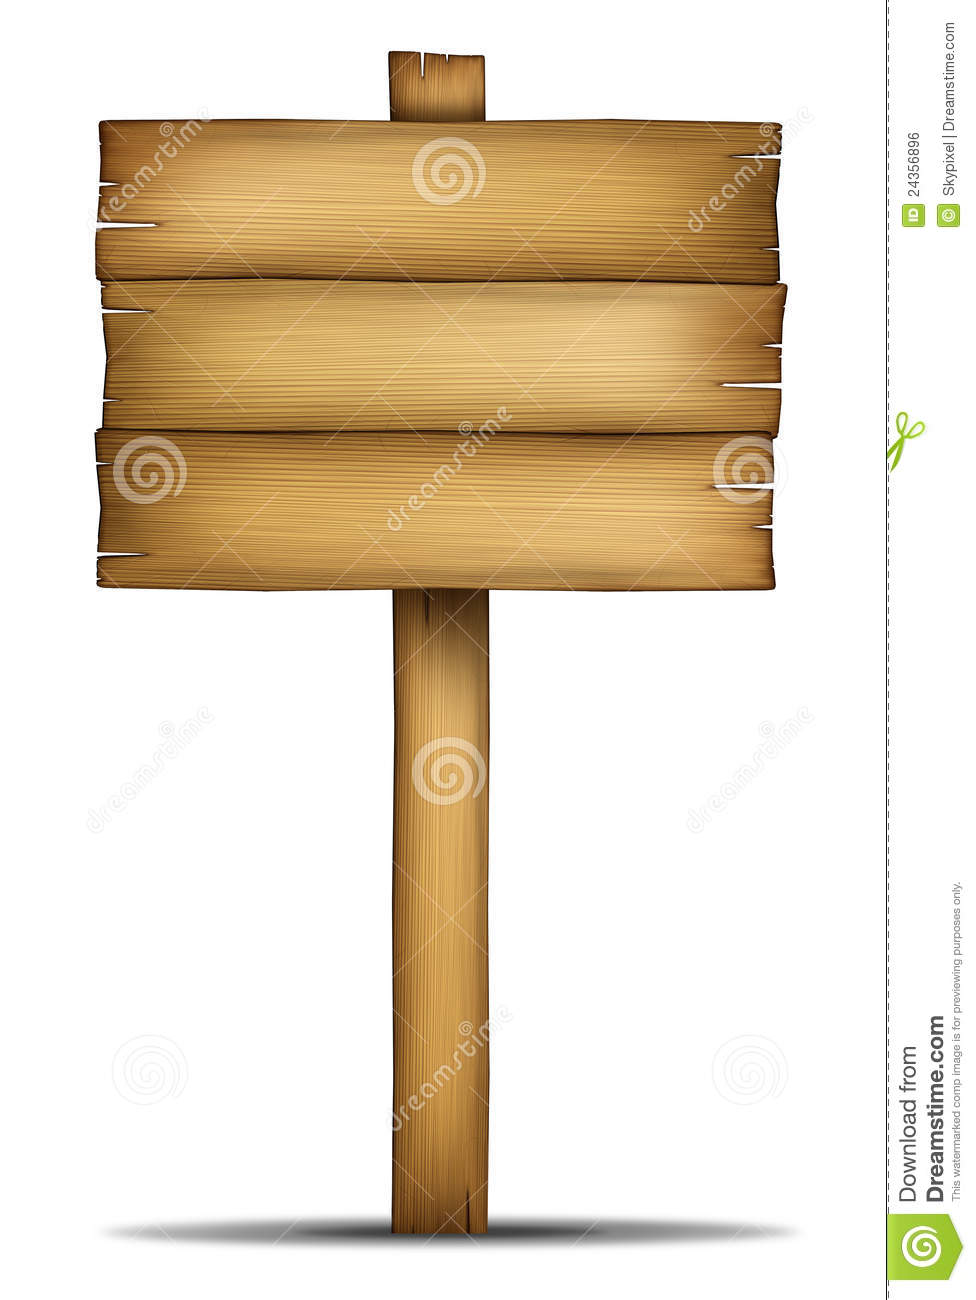 Wooden sign board with pole stock illustration